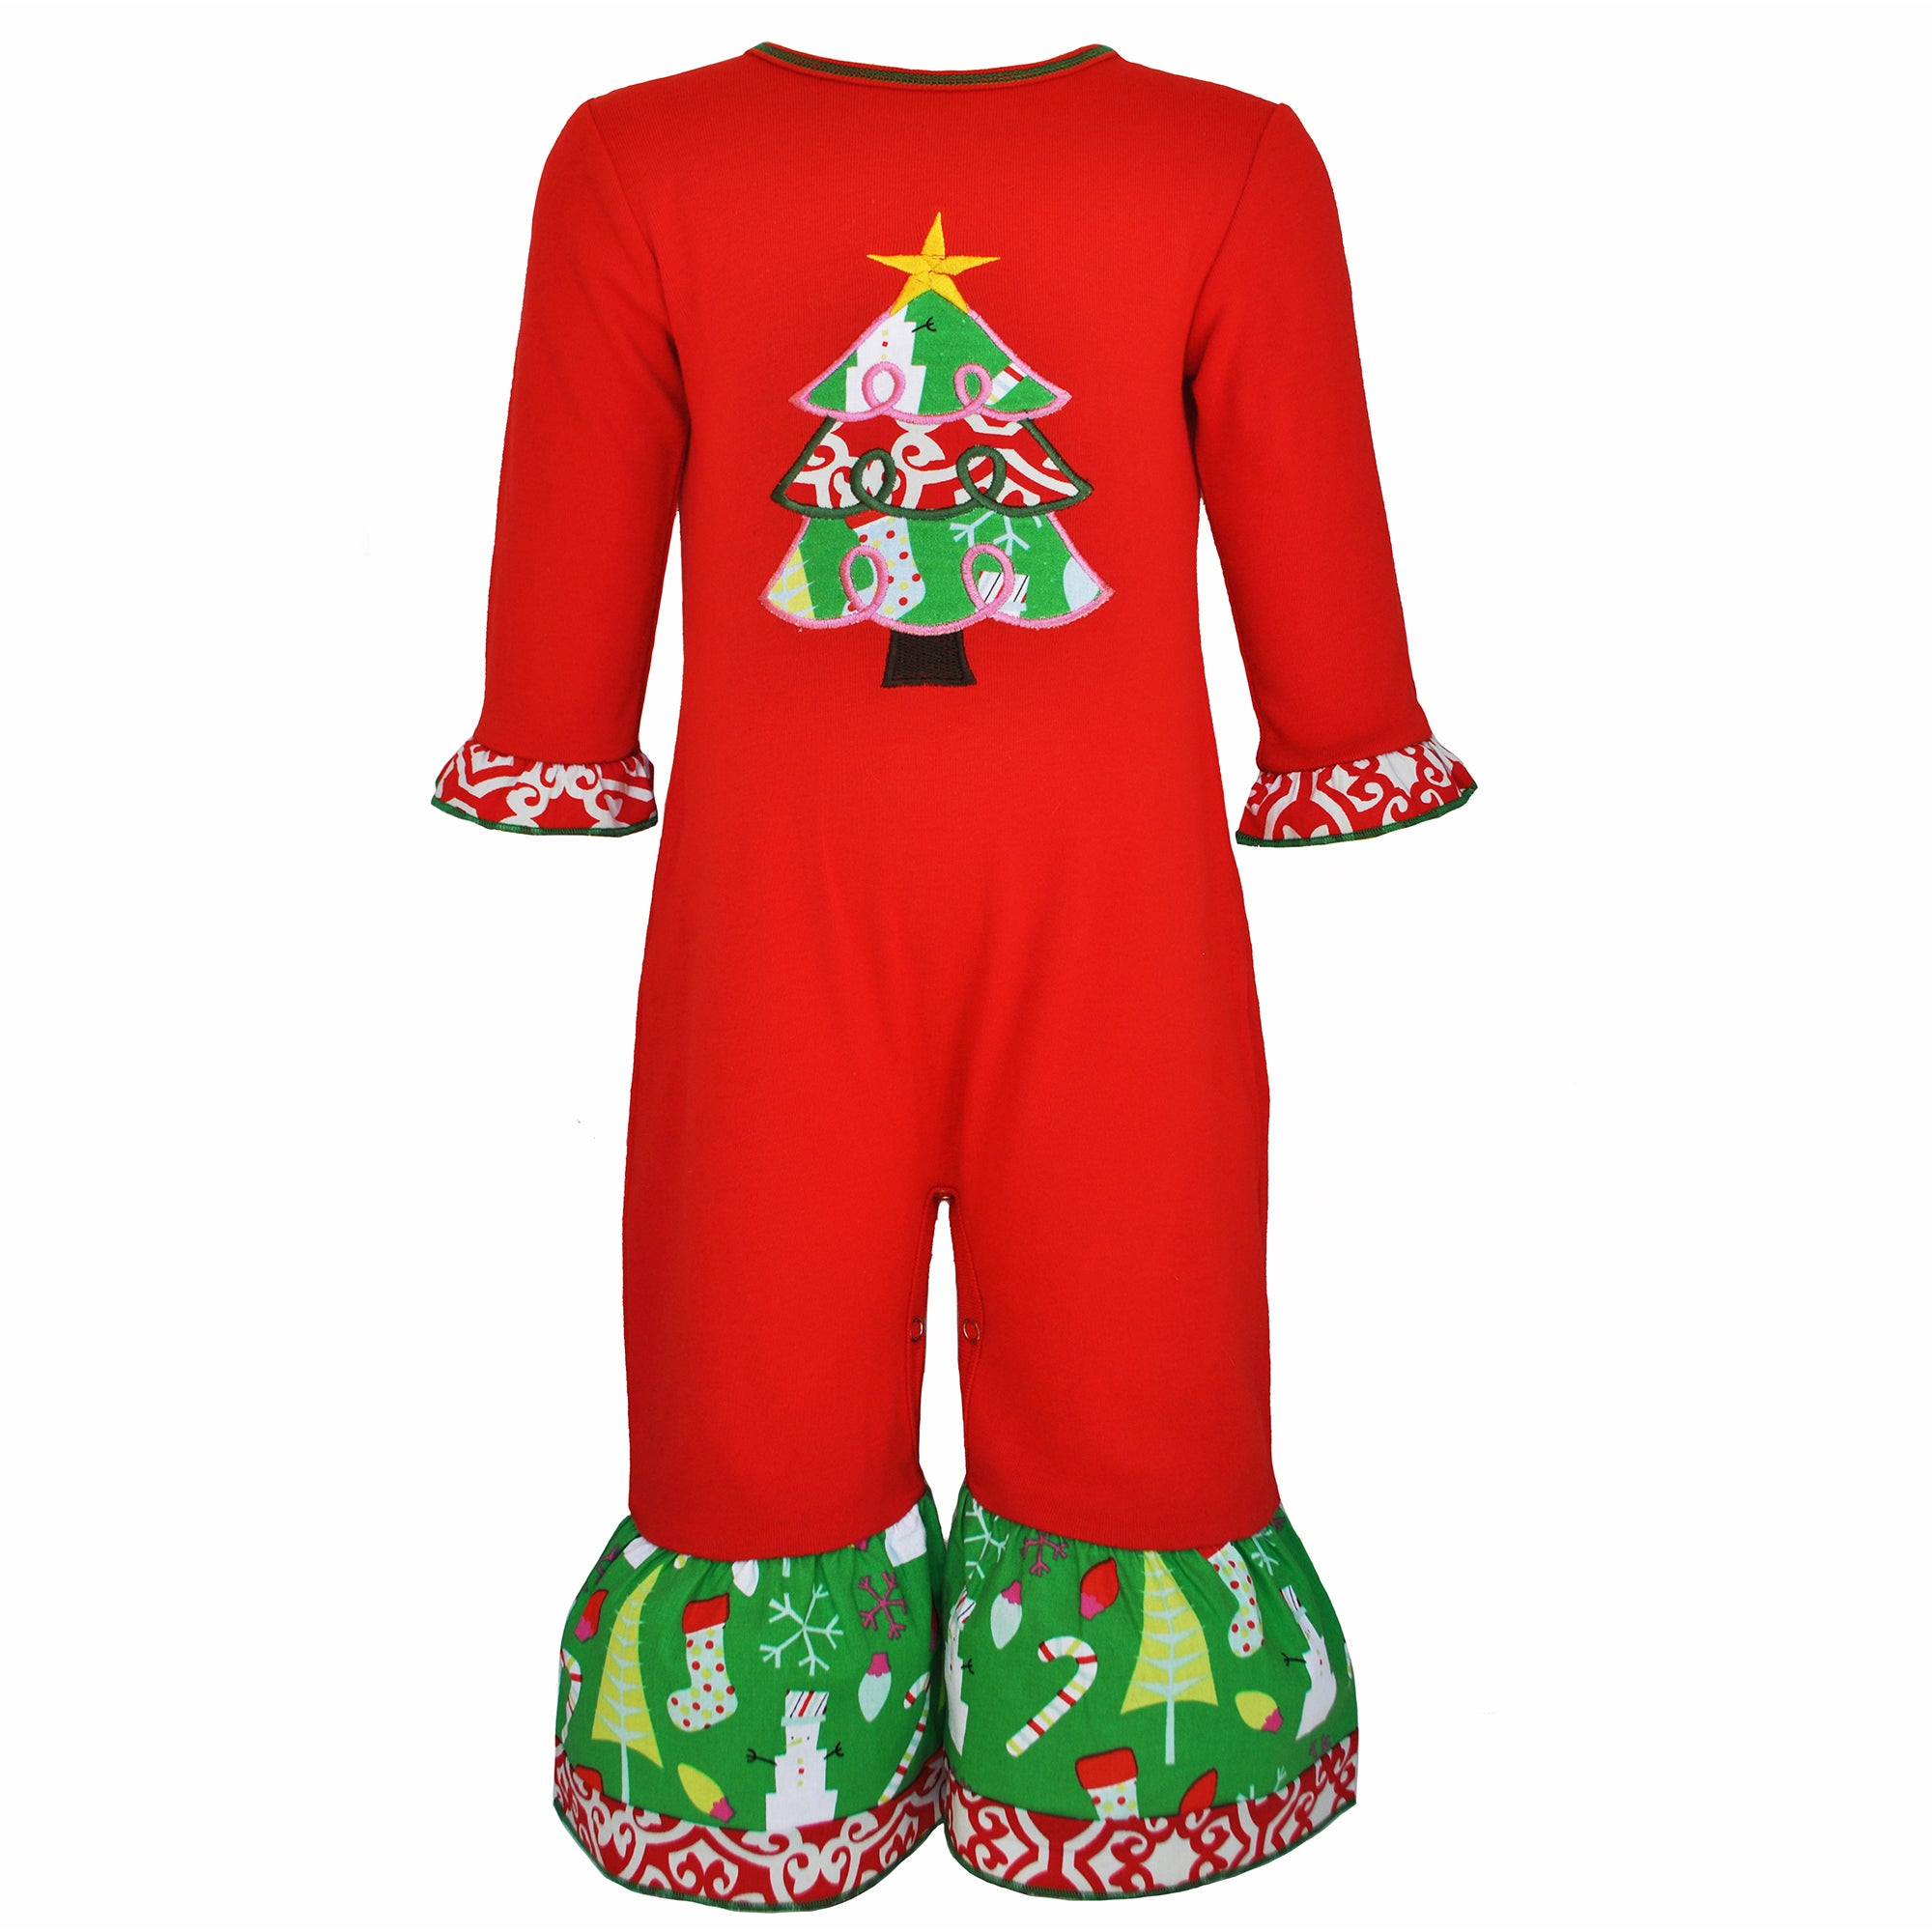 AnnLoren Baby Girls Red /& White Christmas Tree Romper Outfit Size 24 Months